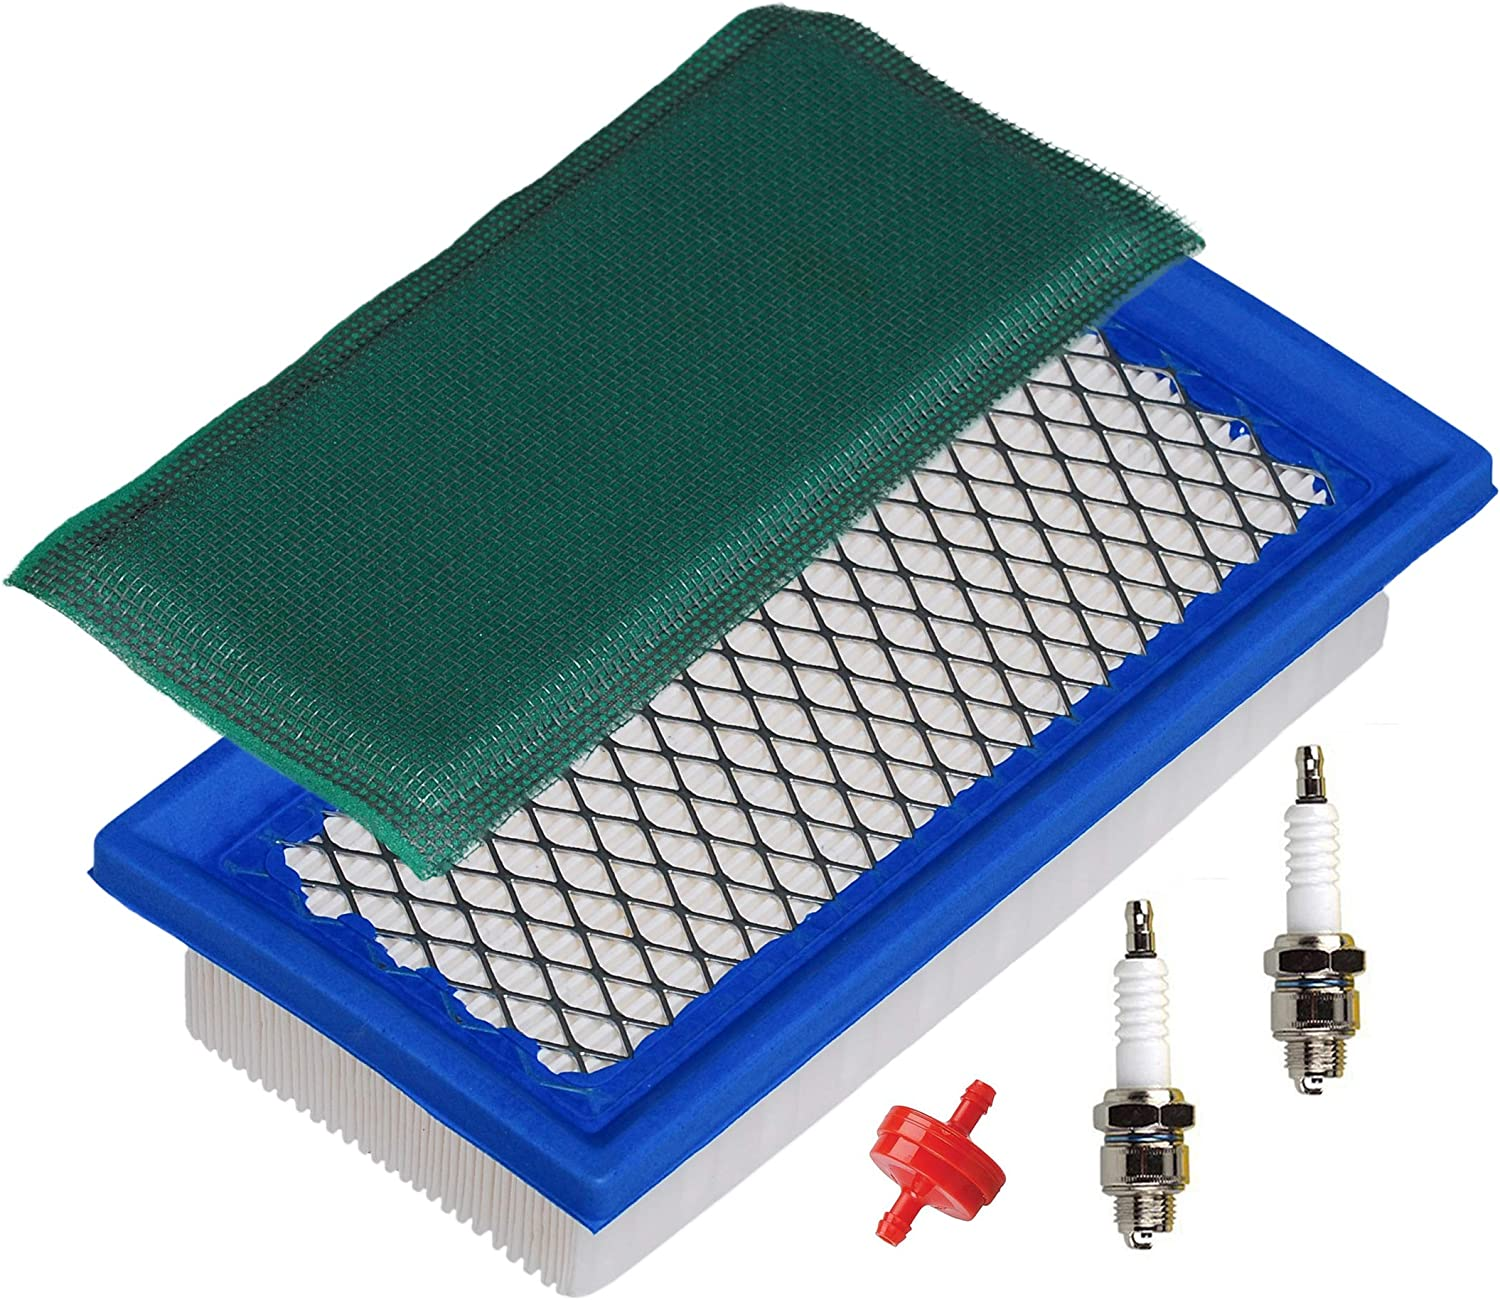 HIFROM Flat Air Filter Cartridge Cleaner Pre-Filter with Fuel Filter Spark Plug Kit Replacement for 176400 19B400 226400 256400 192400 196400 Replace 4195 496077 691643